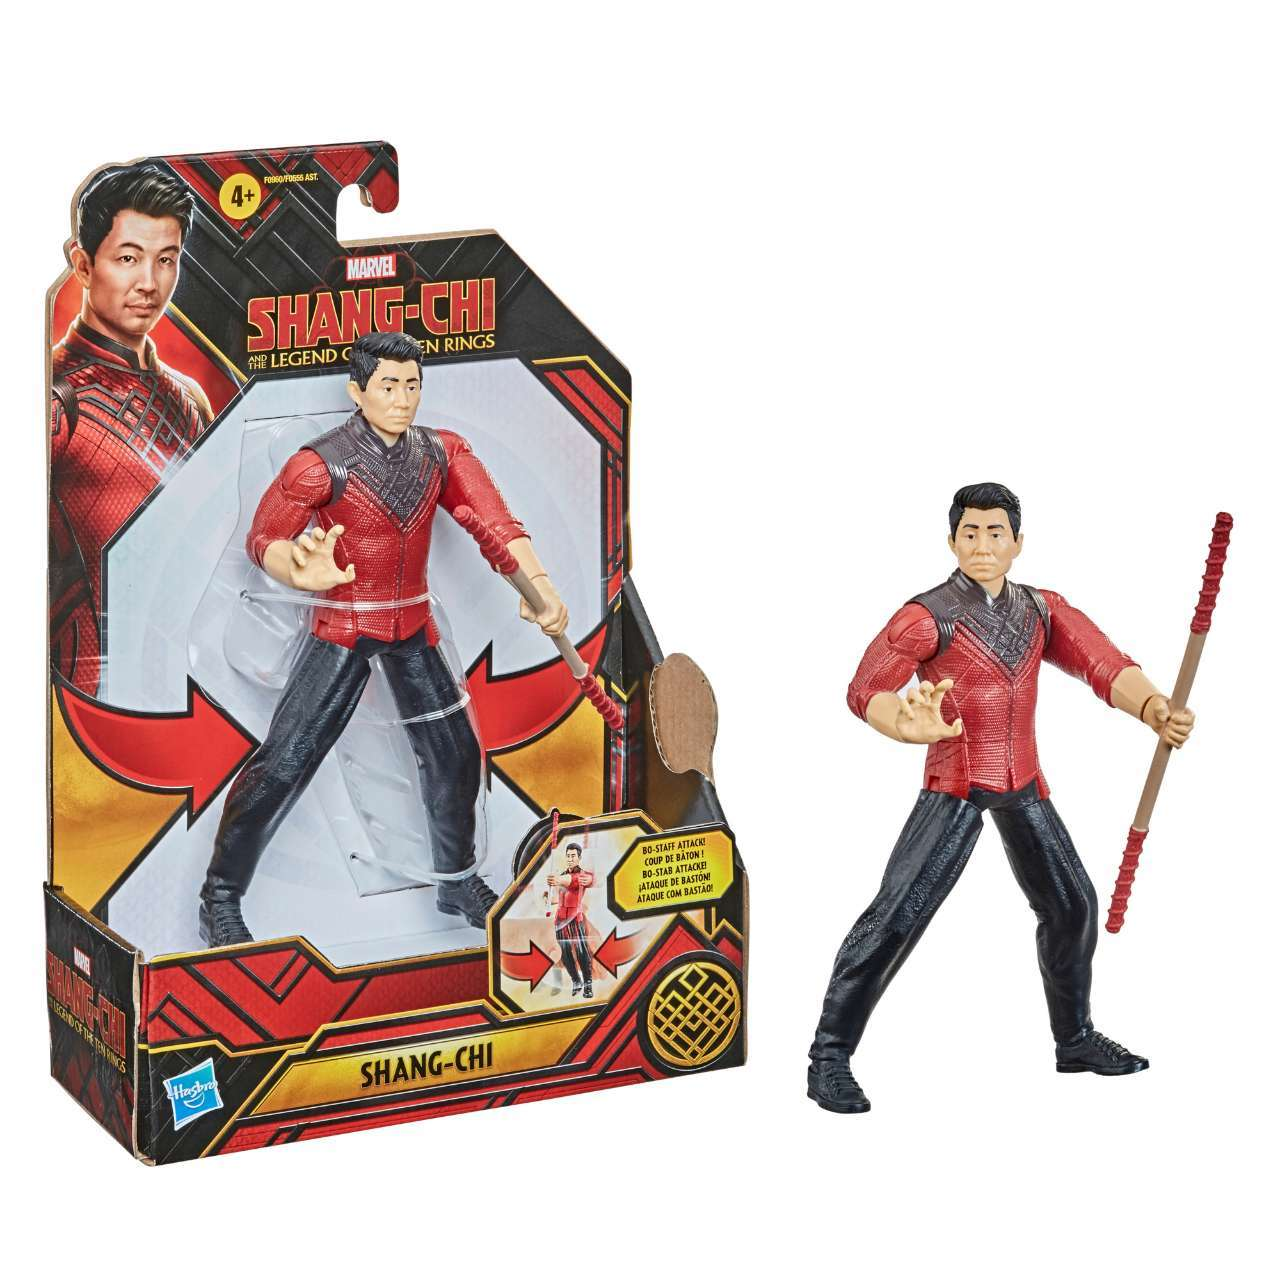 MARVEL SHANG-CHI AND THE LEGEND OF THE TEN RINGS 6-INCH SHANG-CHI Figure - oop (2)